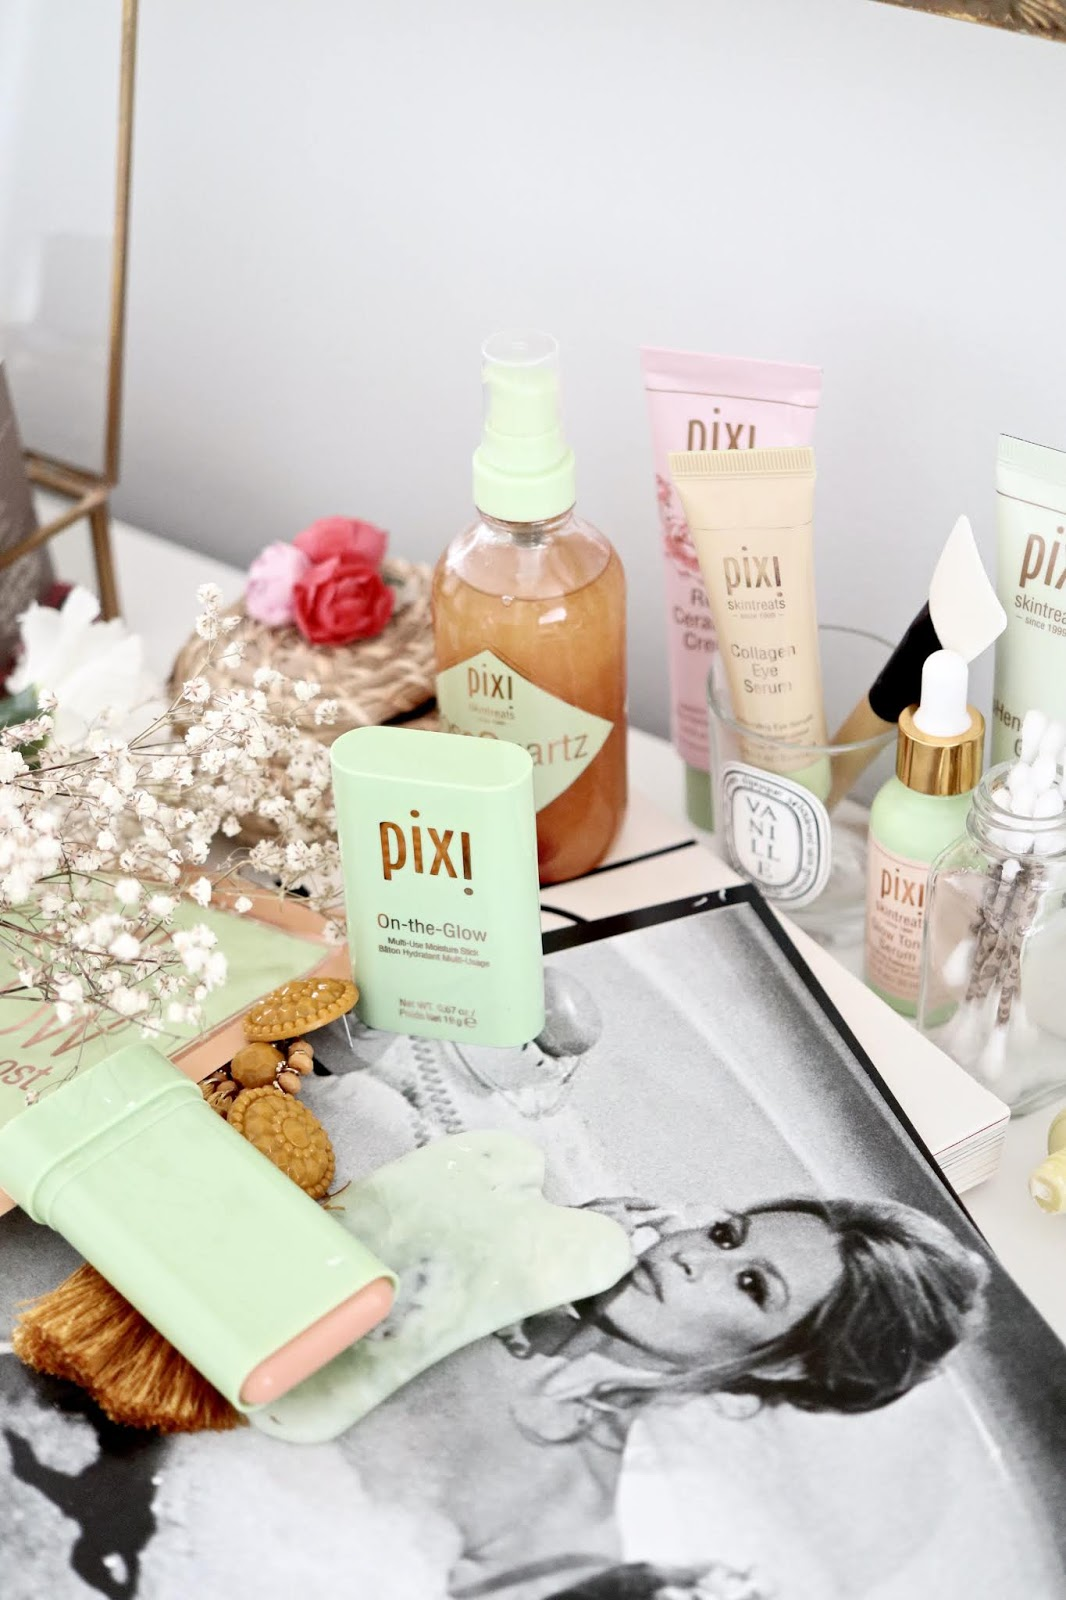 New Pixi Beauty On-The-Glow Stick